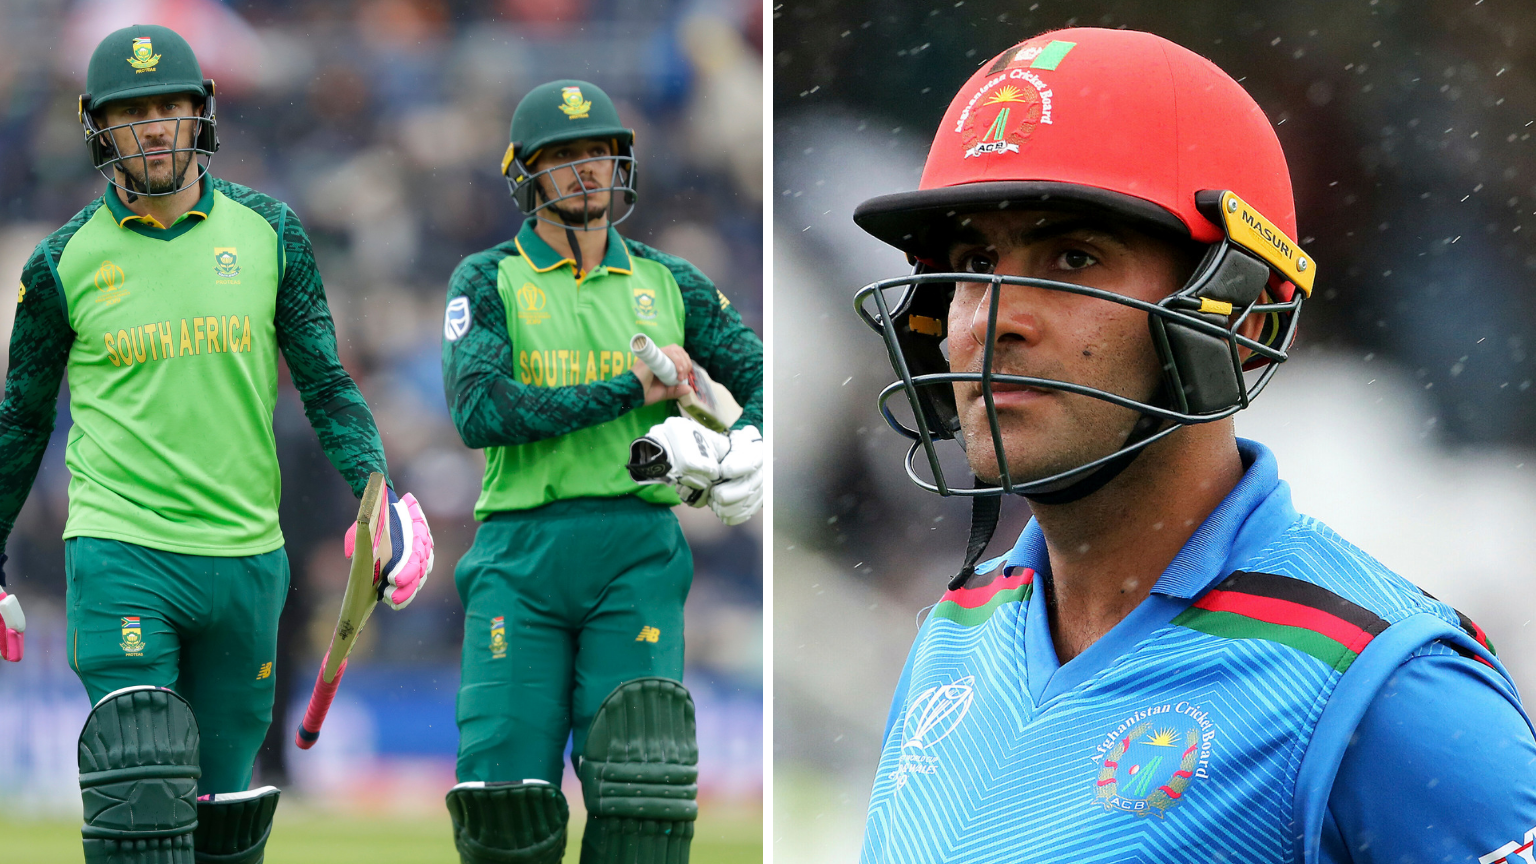 ICC World Cup 2019: South Africa, Afghanistan Look for First Win